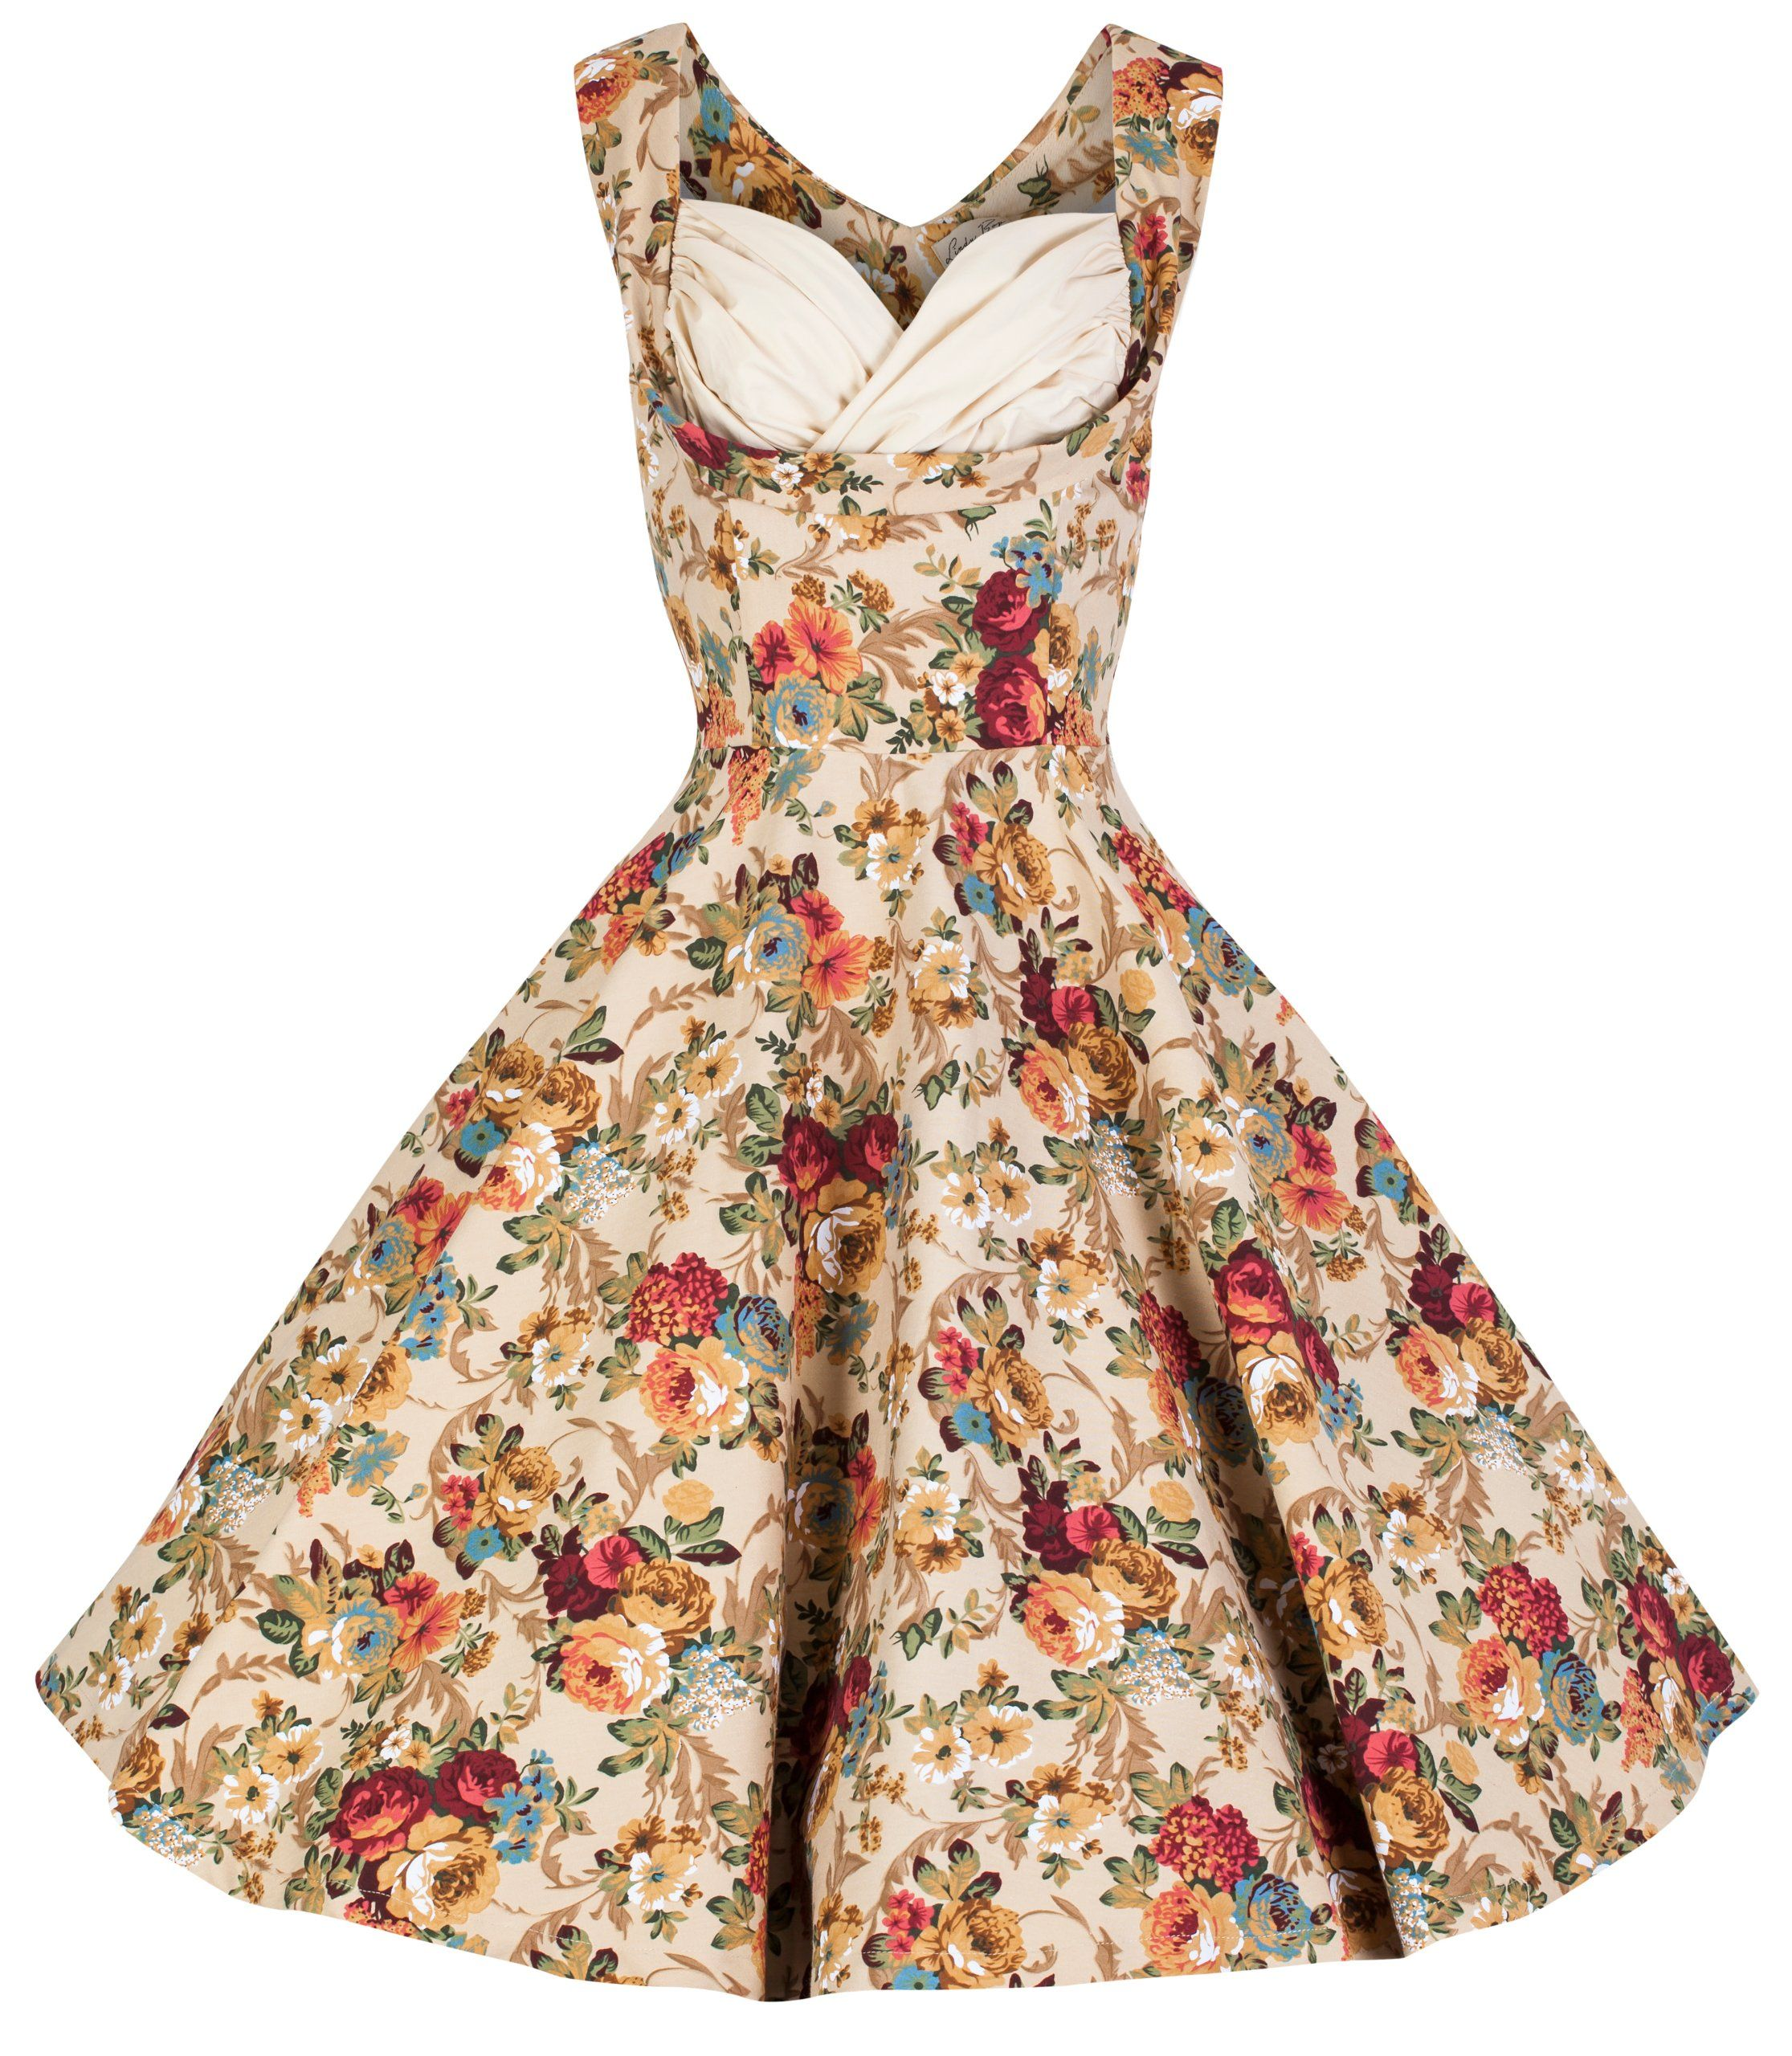 e7367b9ac898 Lindy Bop 'Ophelia' Vintage 1950's Floral Spring Garden Party Picnic Dress  at Amazon Women's Clothing store: